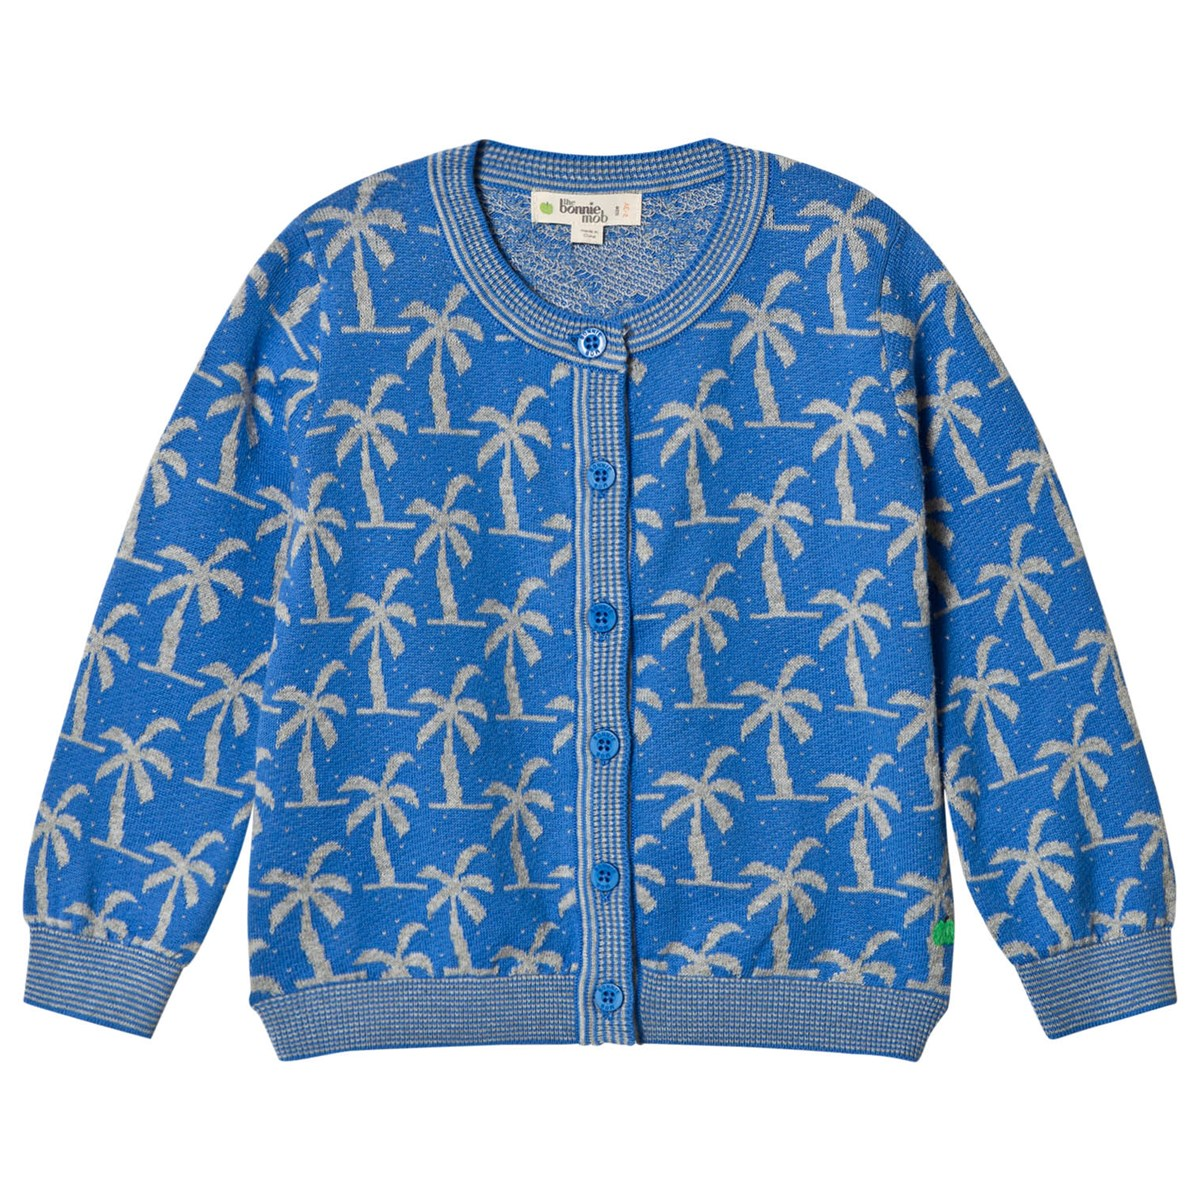 Palm tree jacquard baby coat